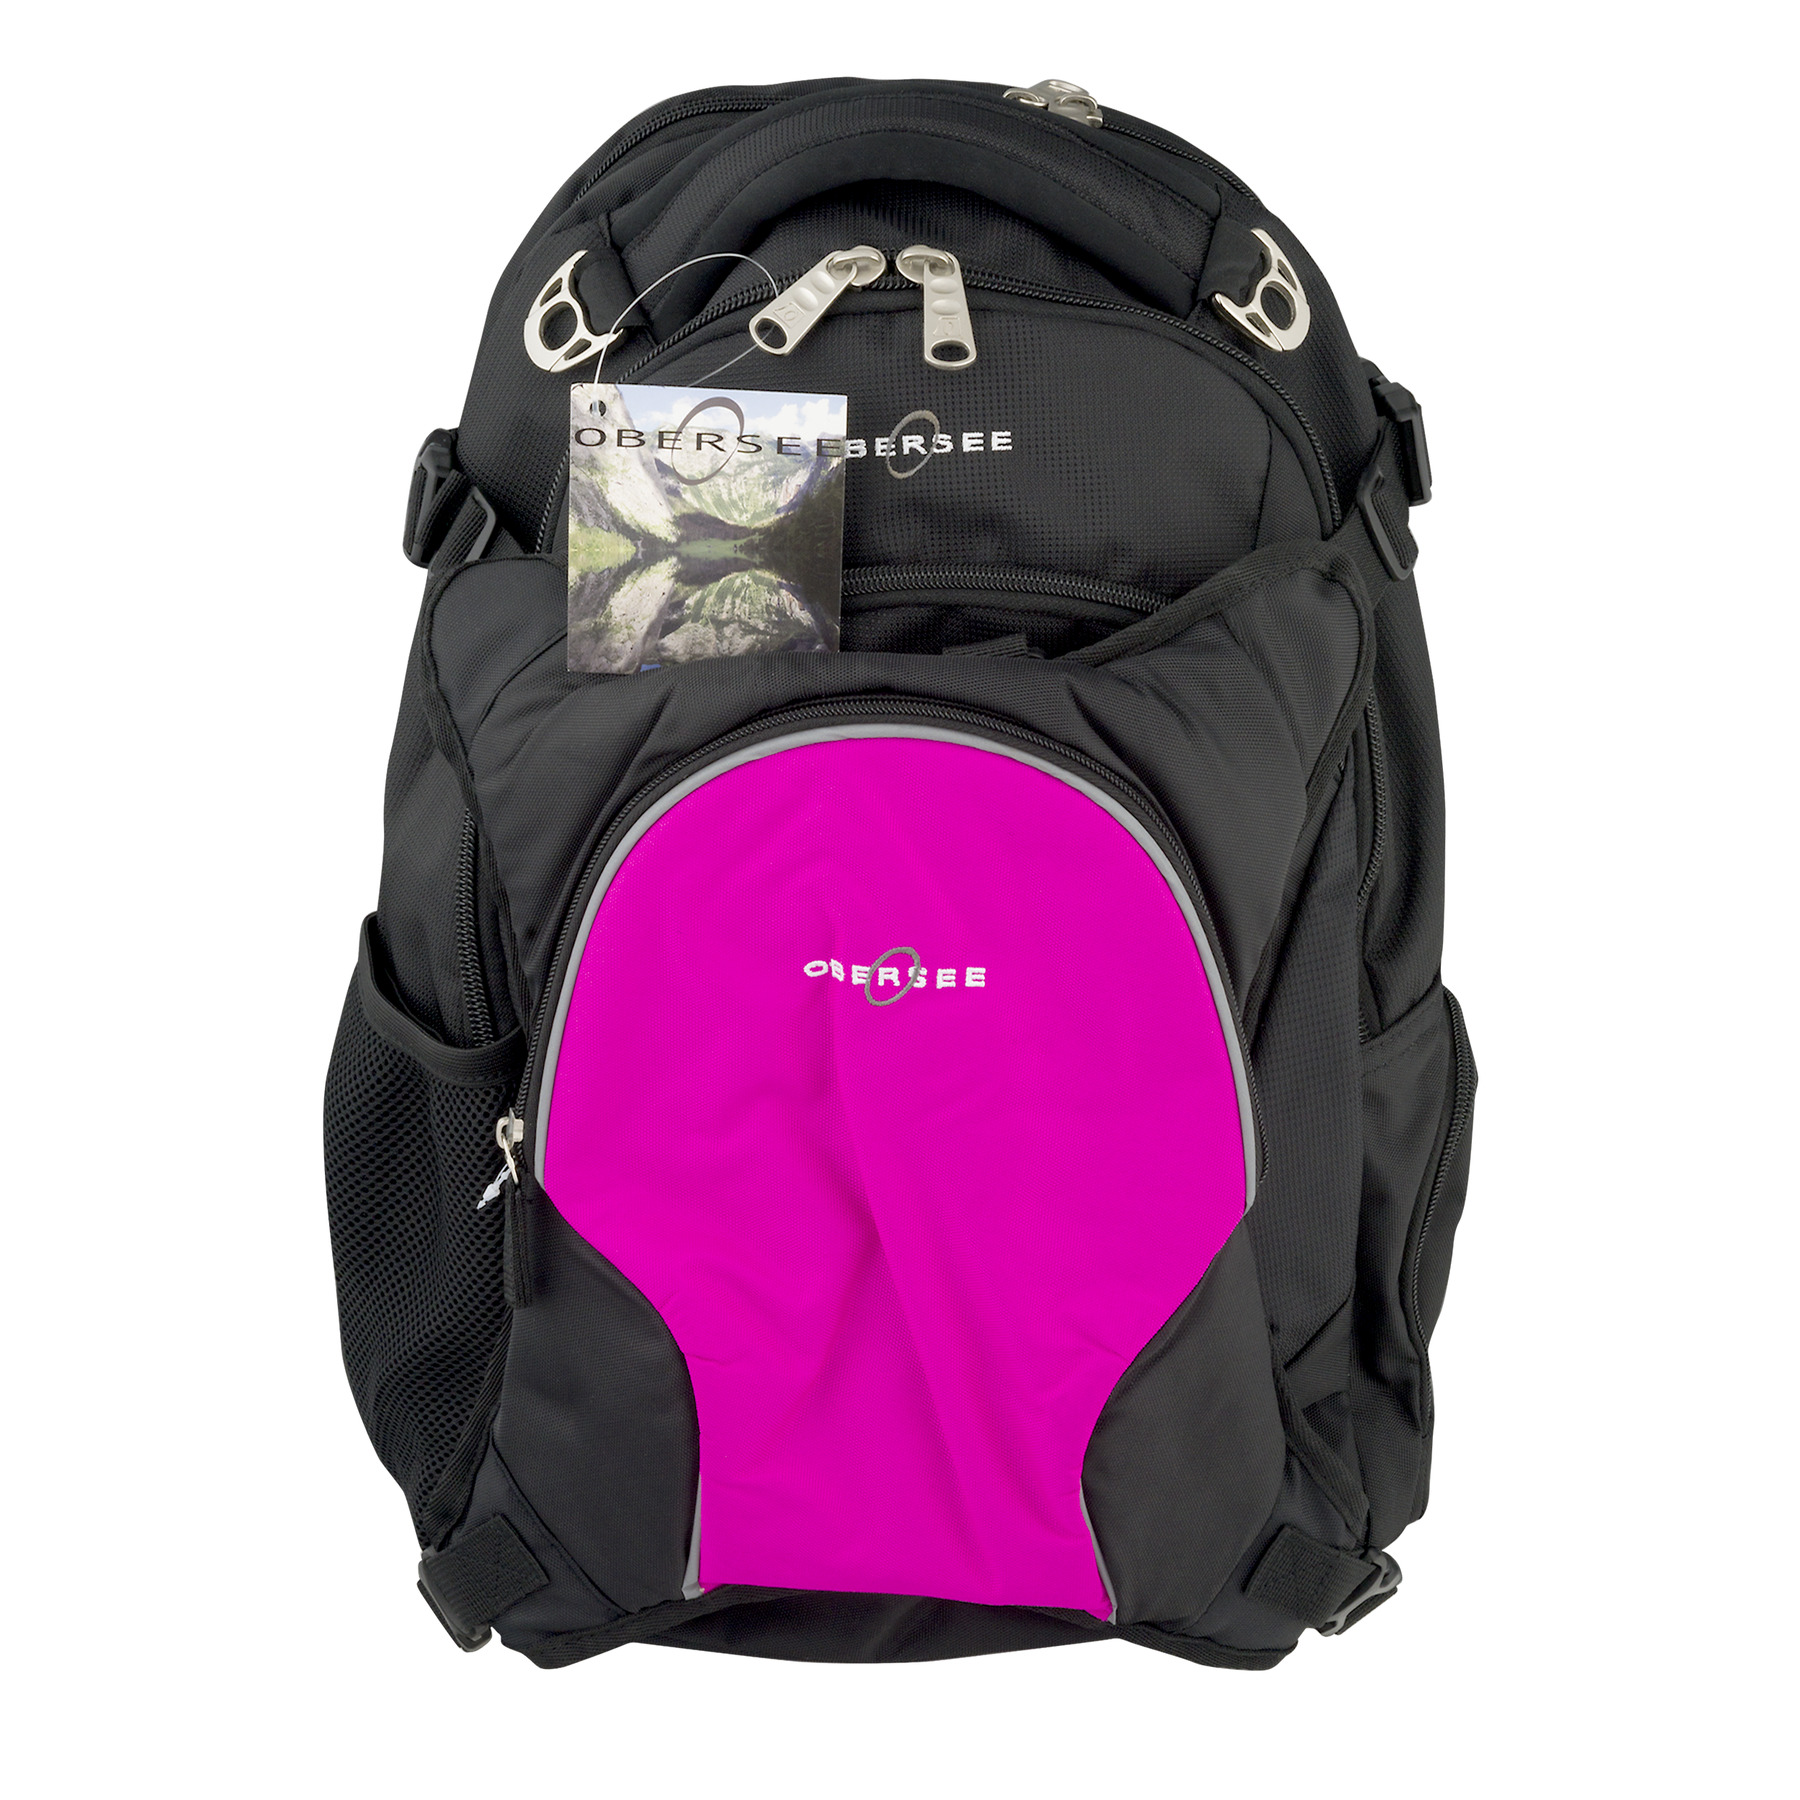 Obersee Oslo Diaper Bag Backpack With Cooler Black Pink, 5.0 CT by Obersee